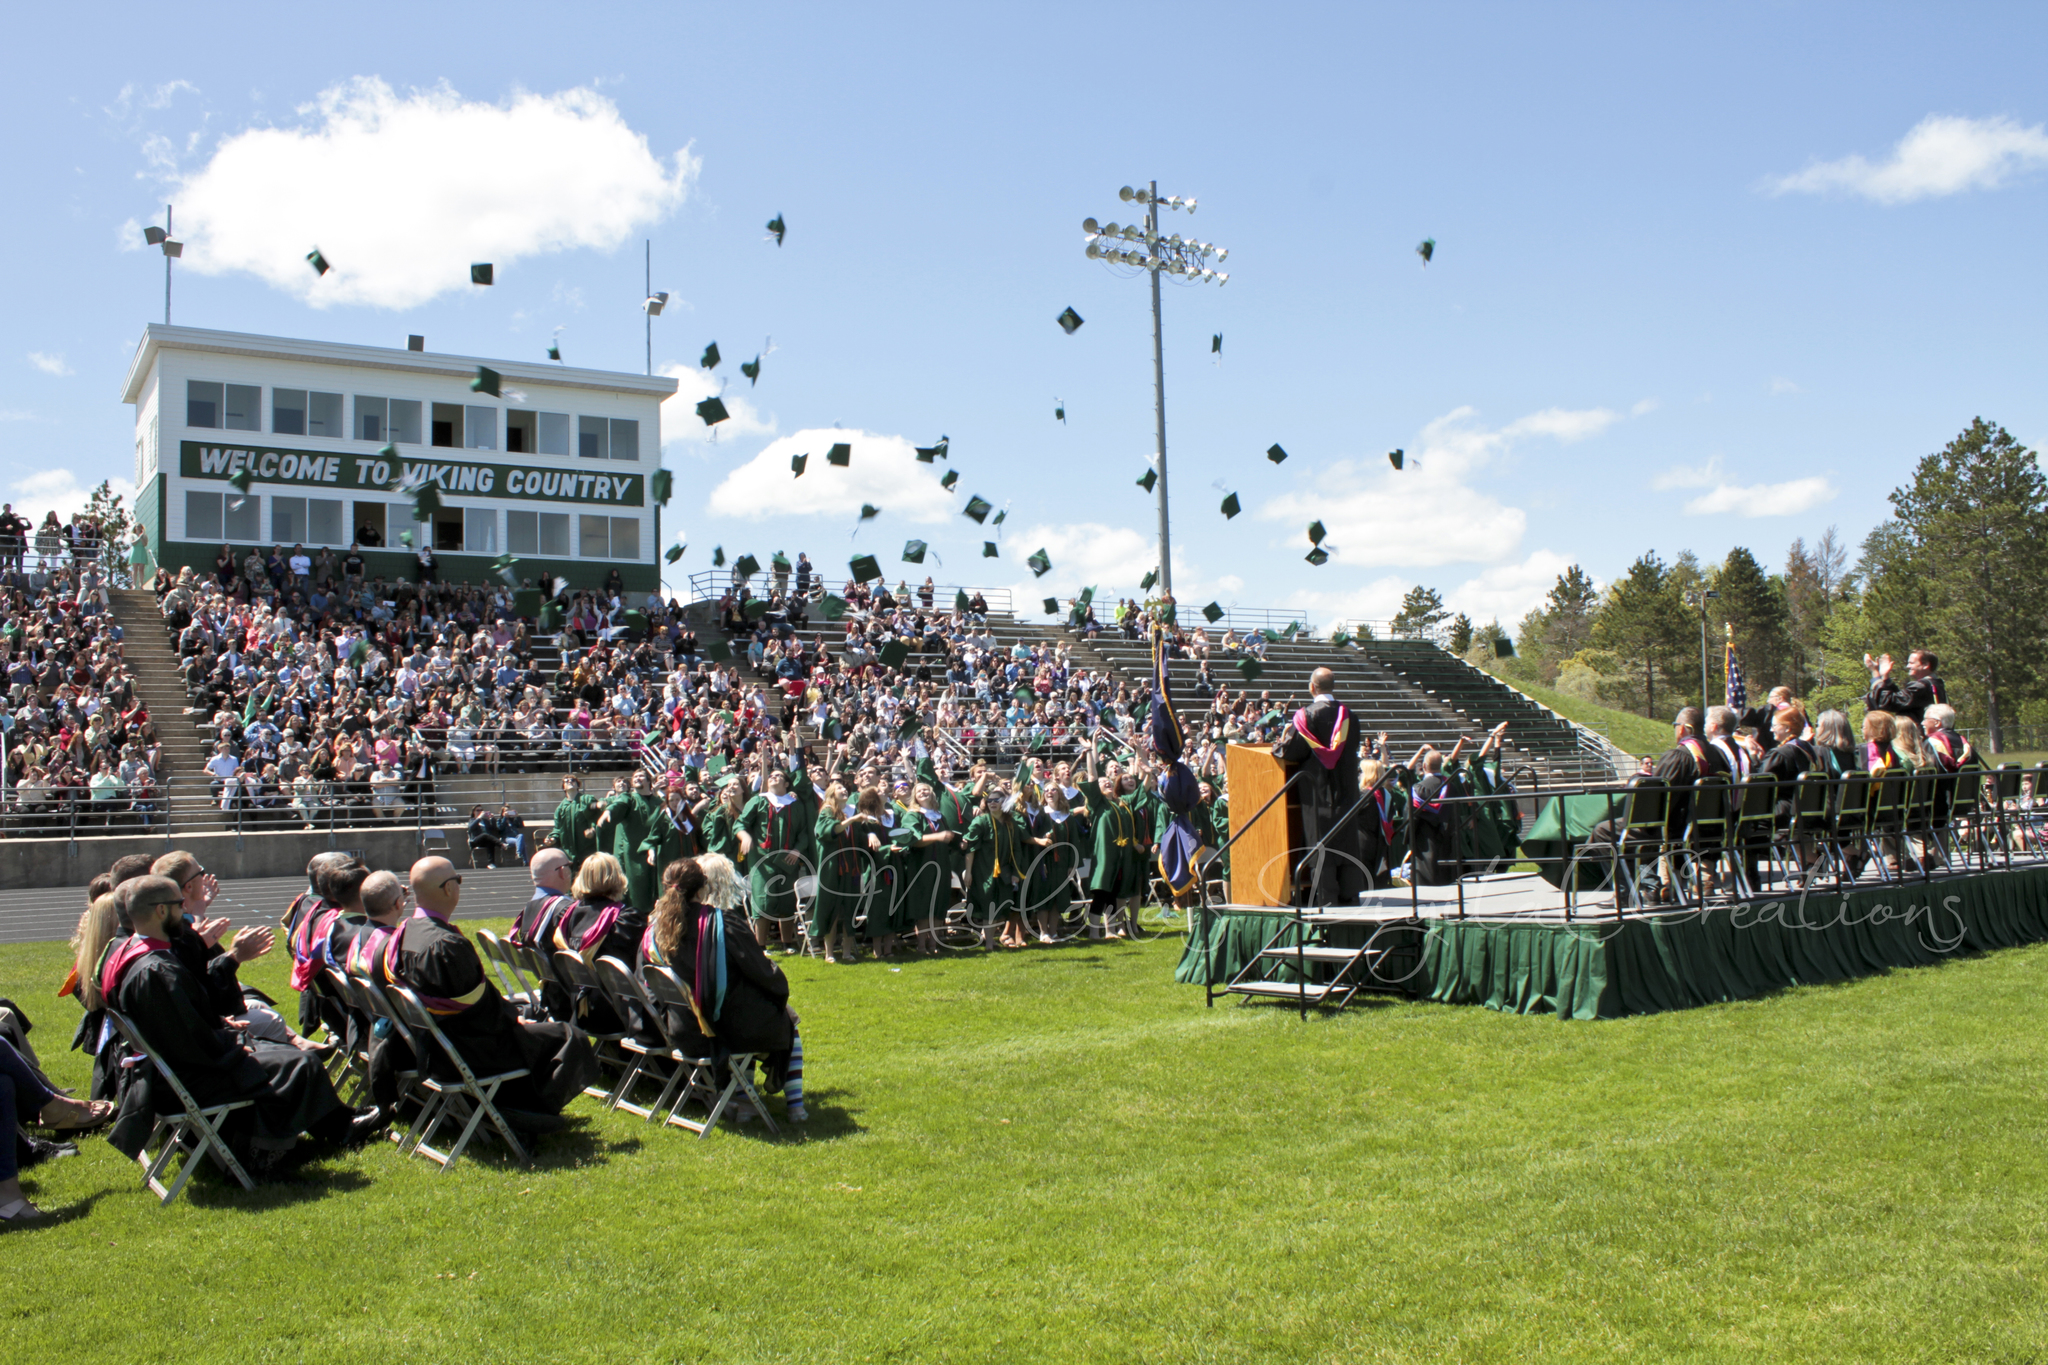 Outdoor commencement ceremony